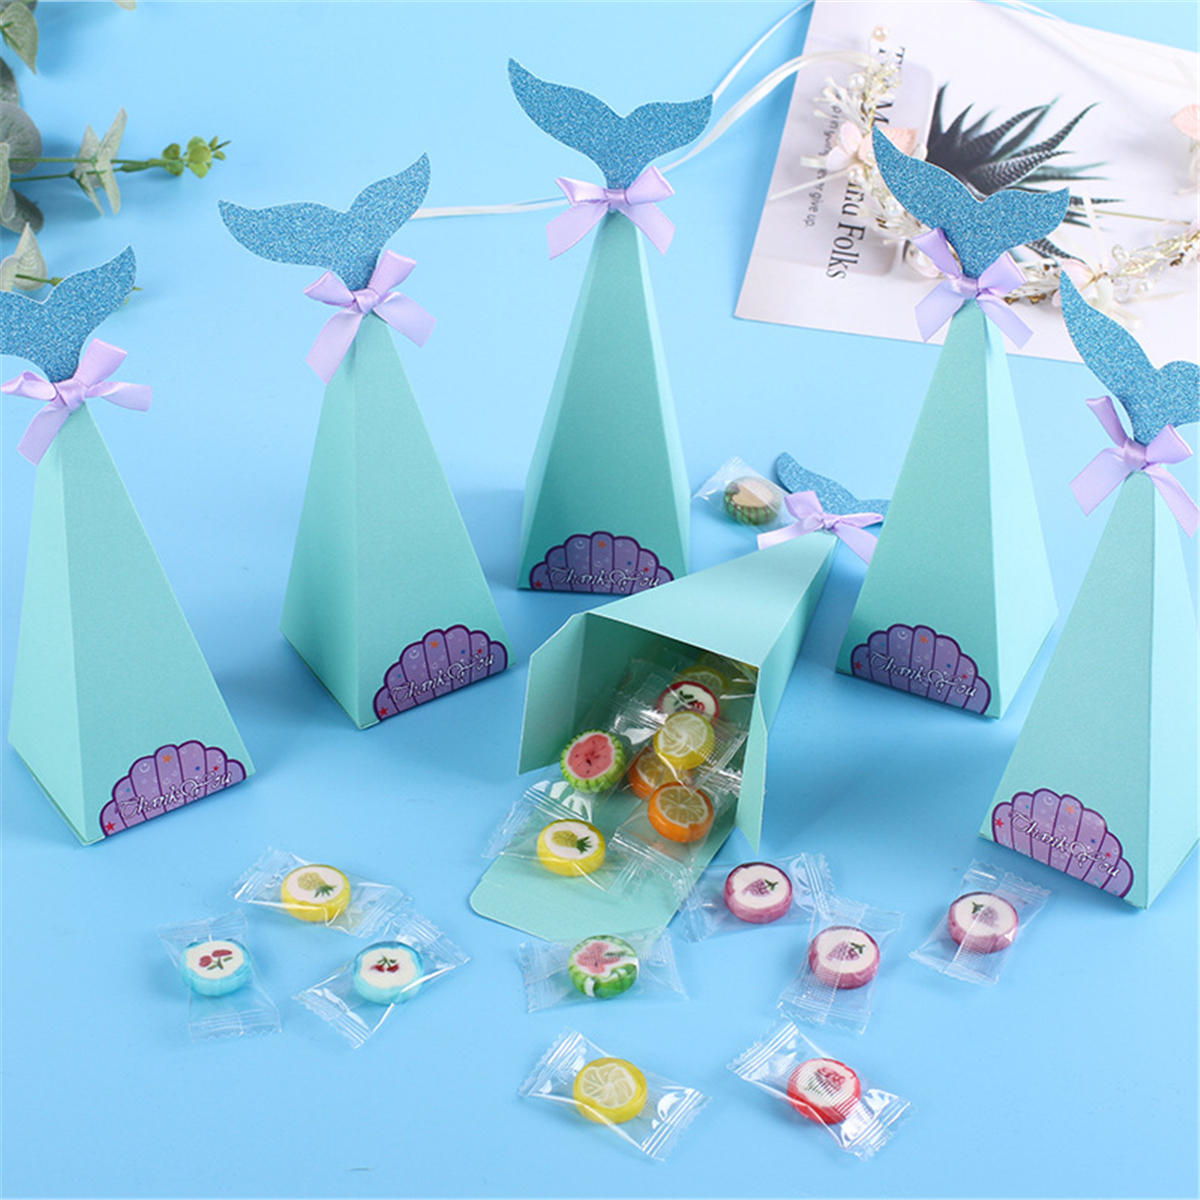 20Pcs/Set Little Mermaid Gift Boxes Paper Sweet Candy Container Kids Birthday Wedding Party Decorations